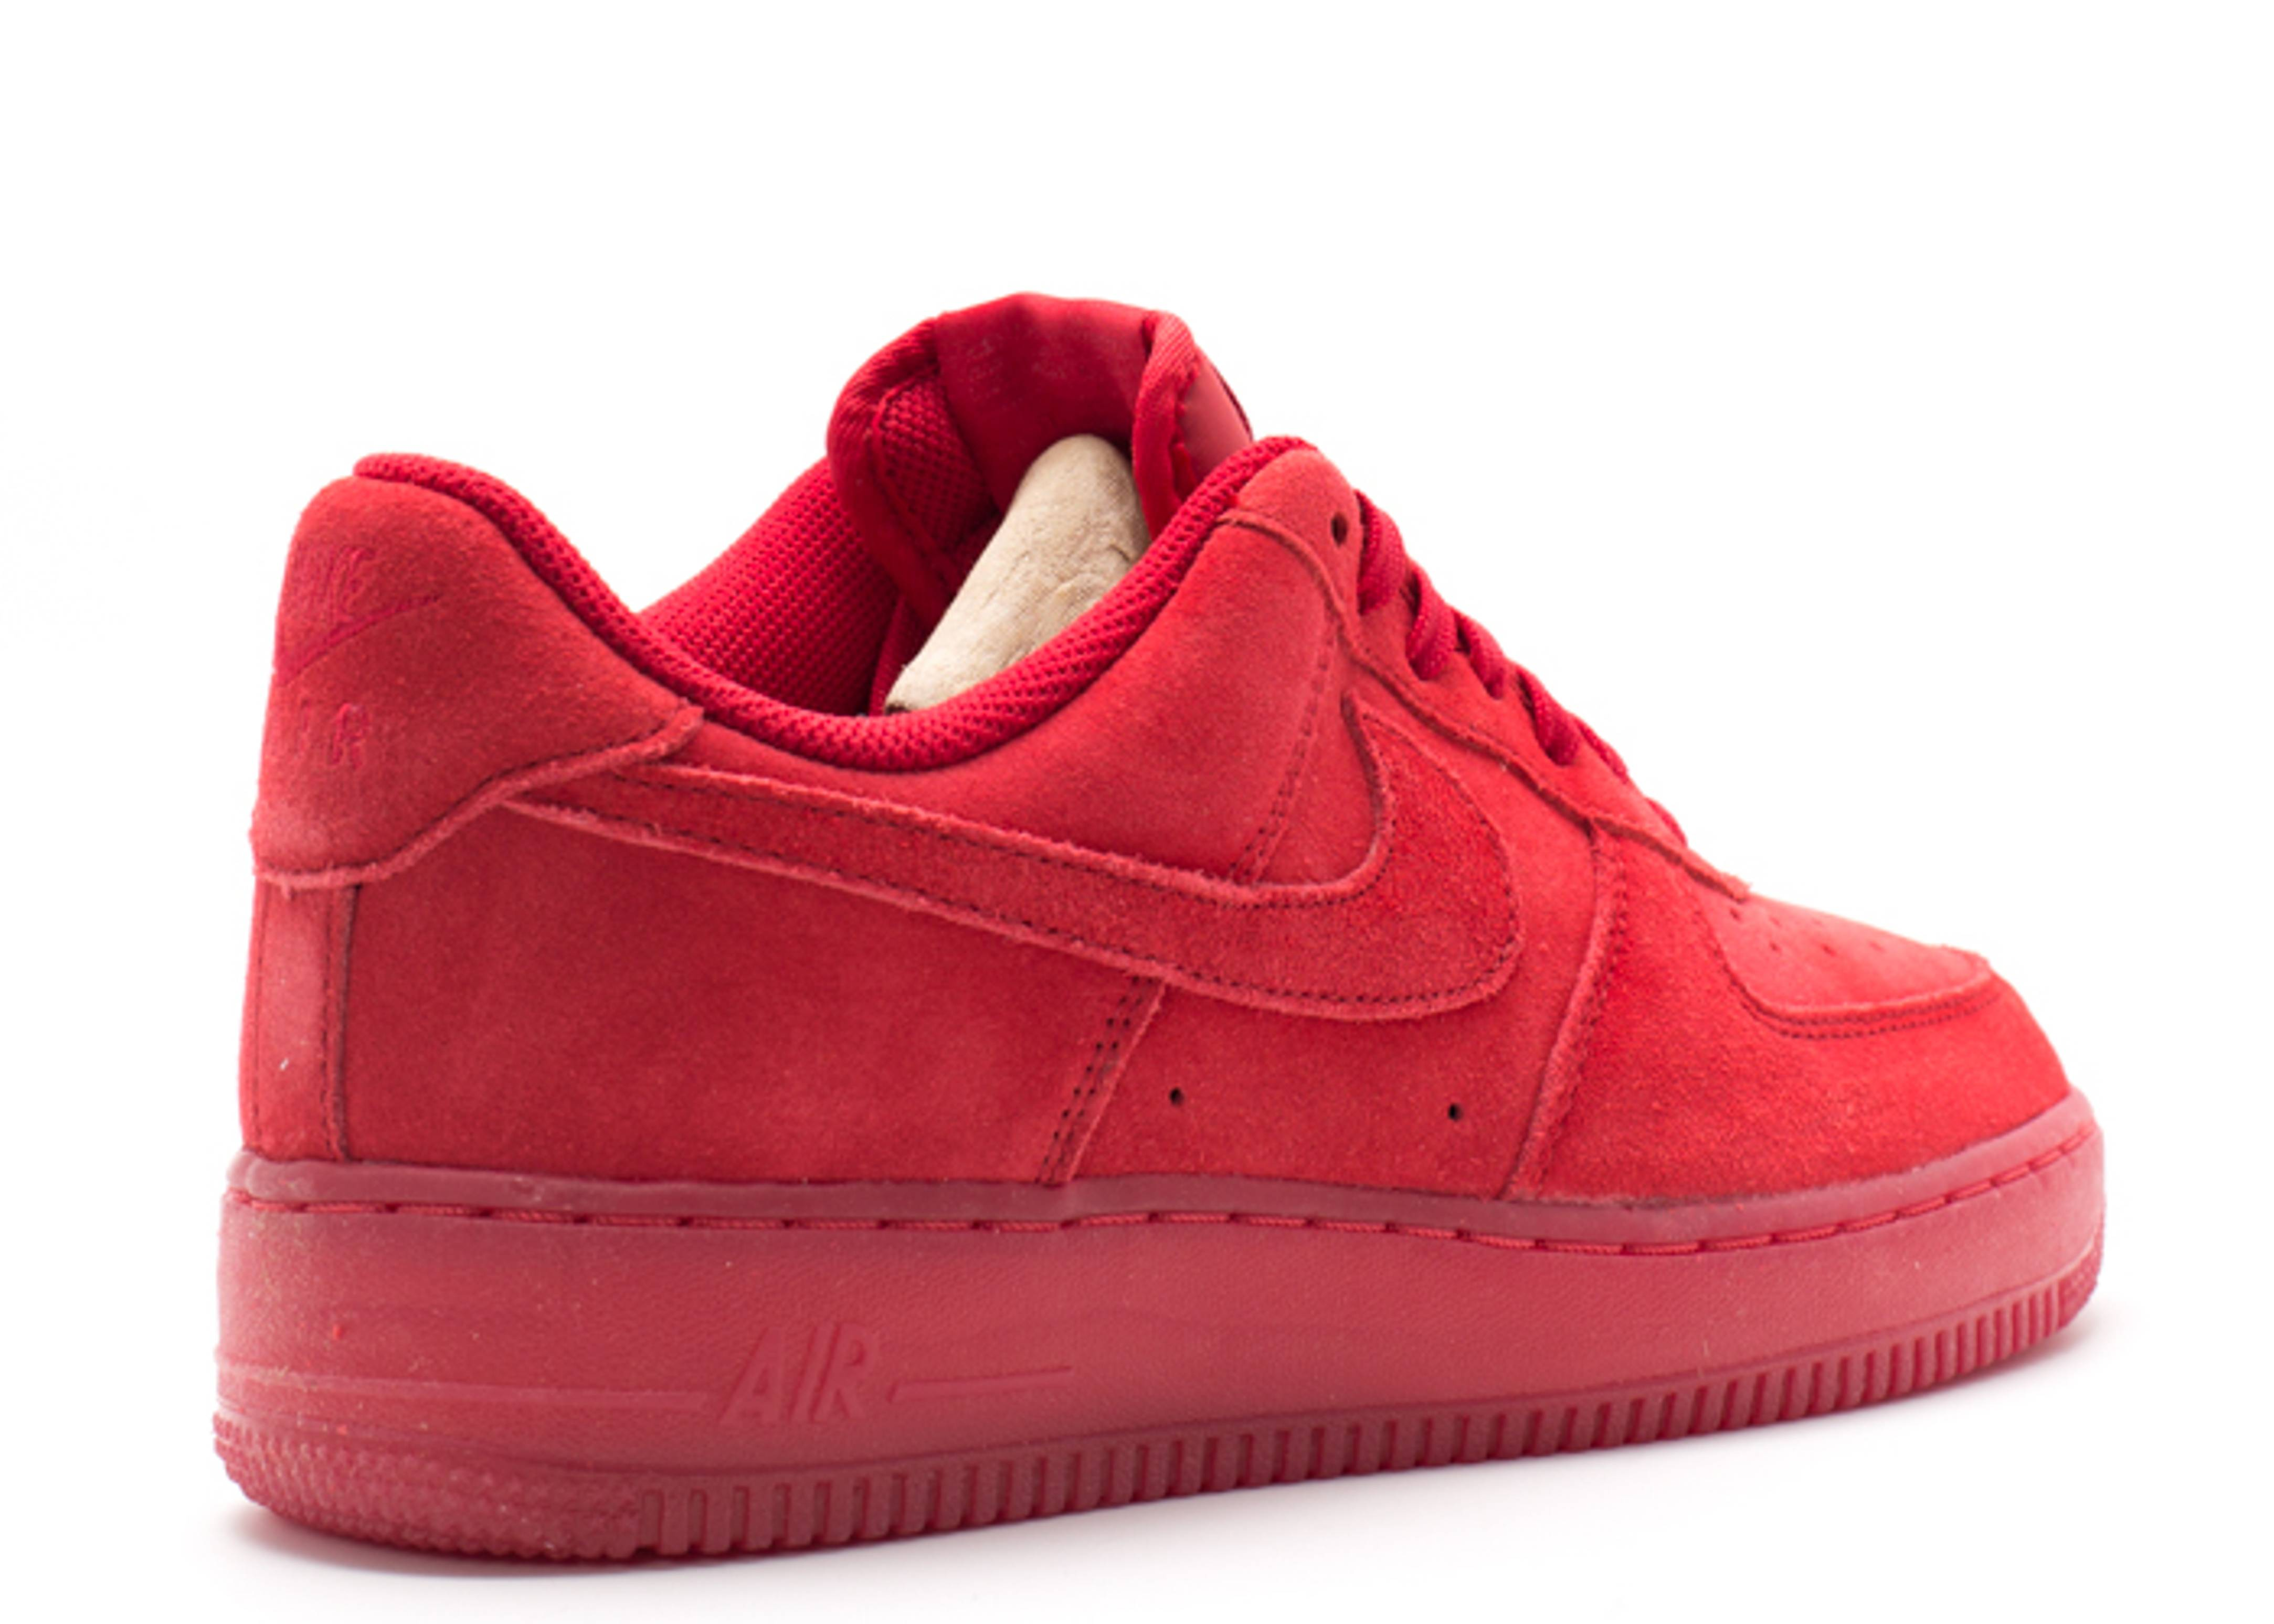 Nike Air Force 1 Low 'Solar Red' | SneakerFiles